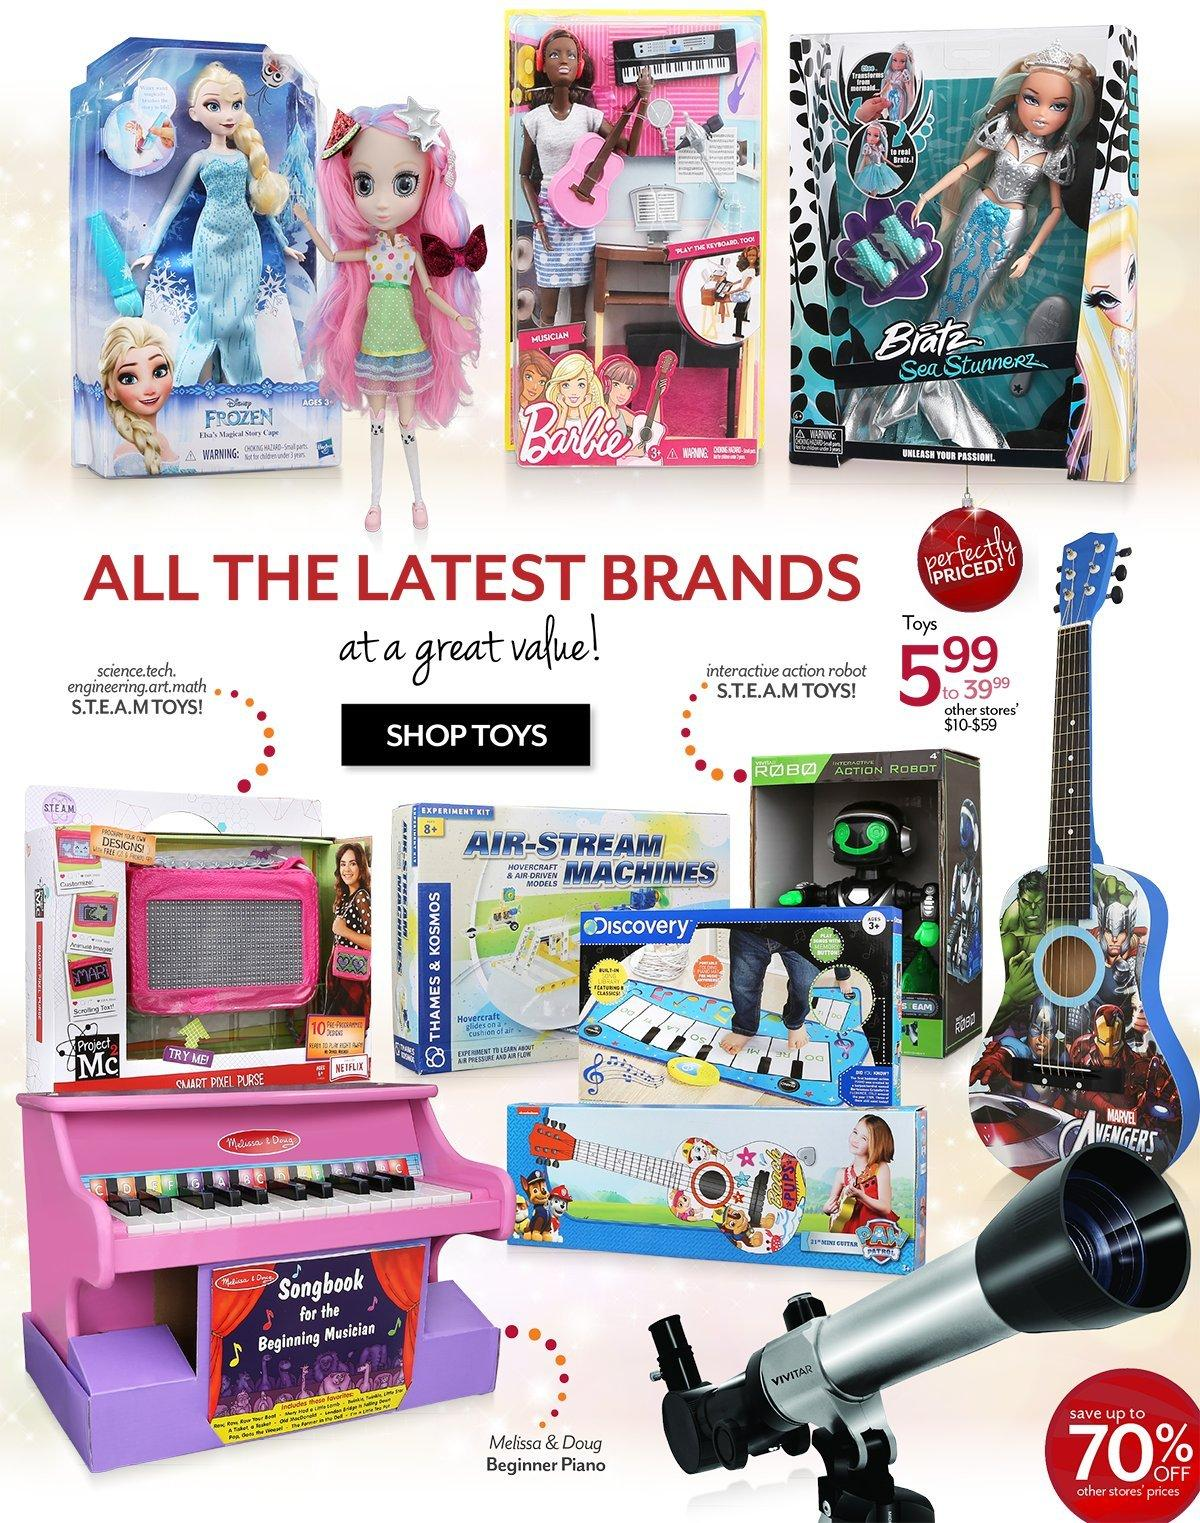 Shop Gifts and Toys for Girls and Boys